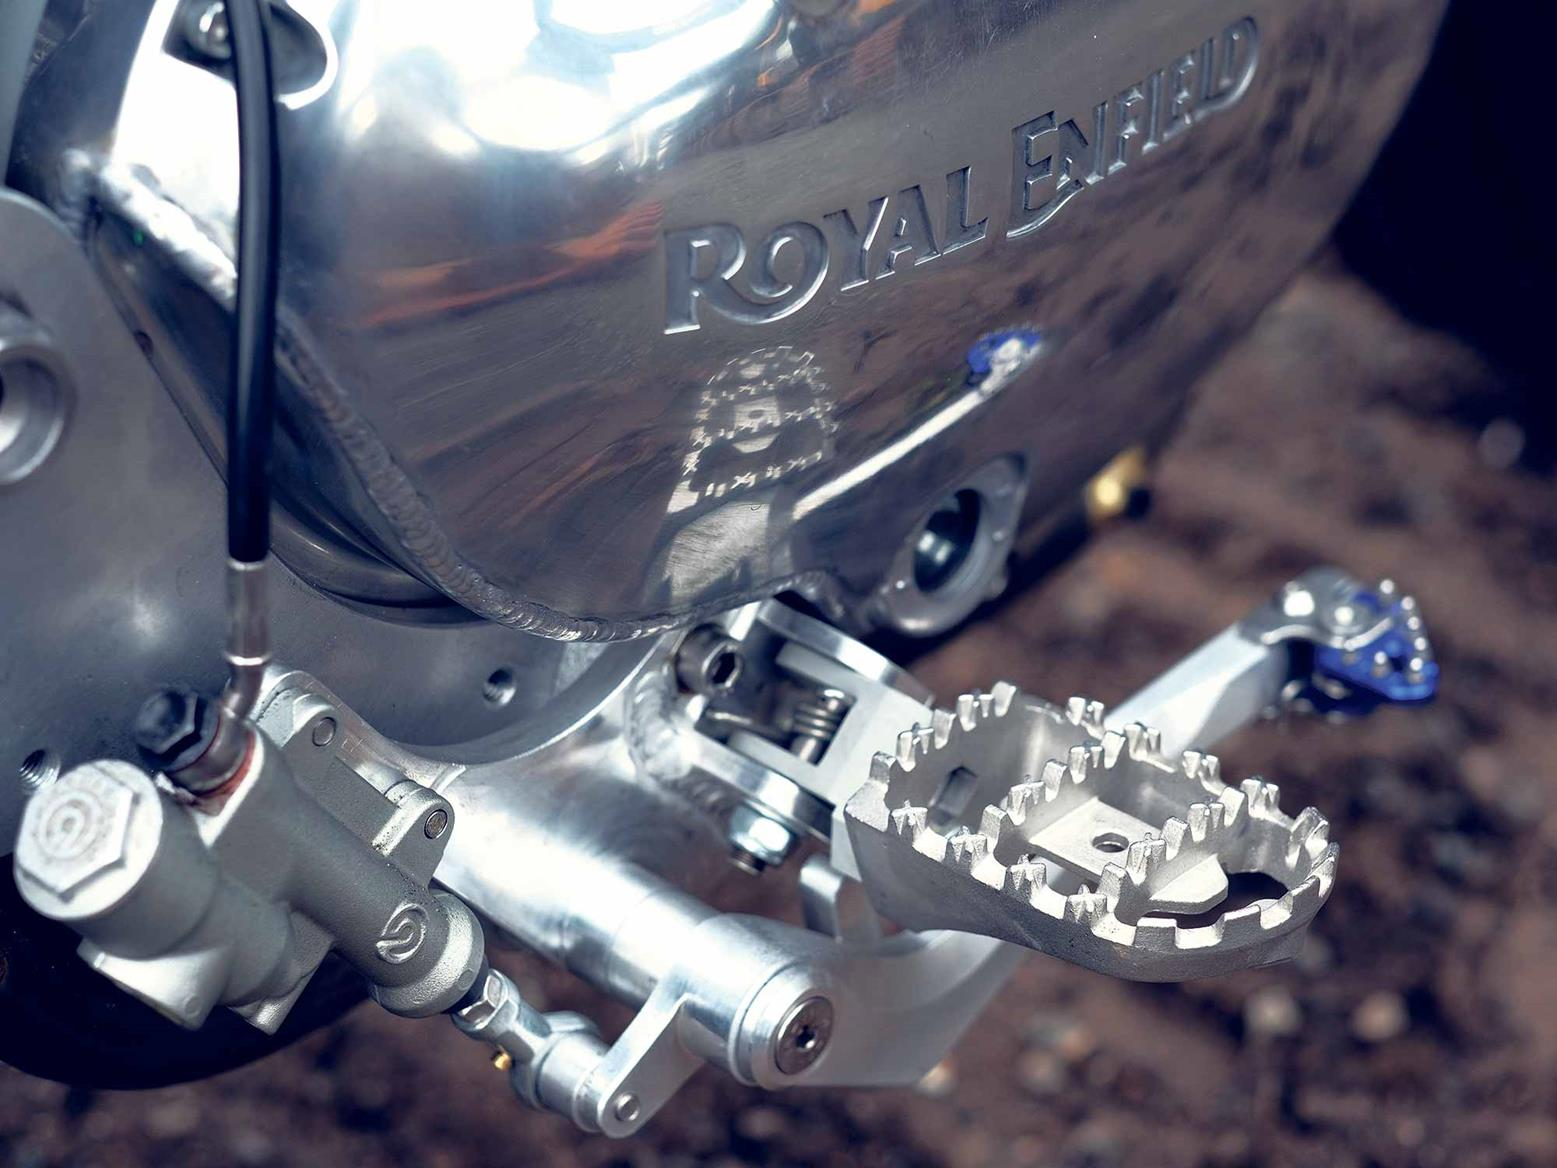 Chunky pegs feature on the Twin Tracker